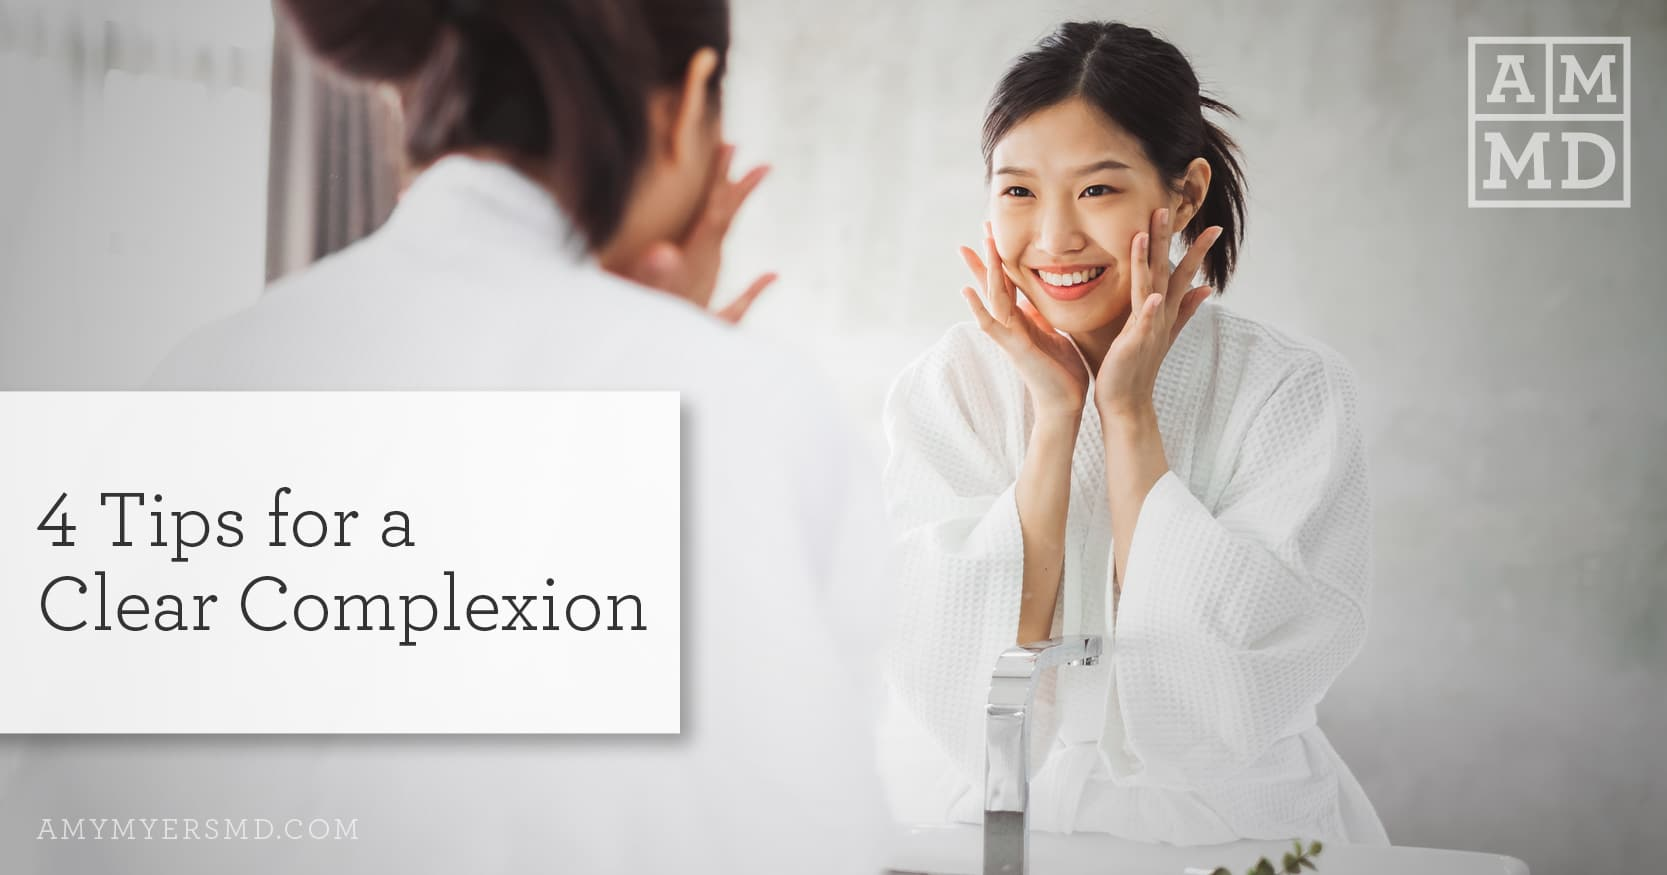 Tips for a Clear Complexion - Woman Smiling in a mirror - Featured image - Amy Myers MD